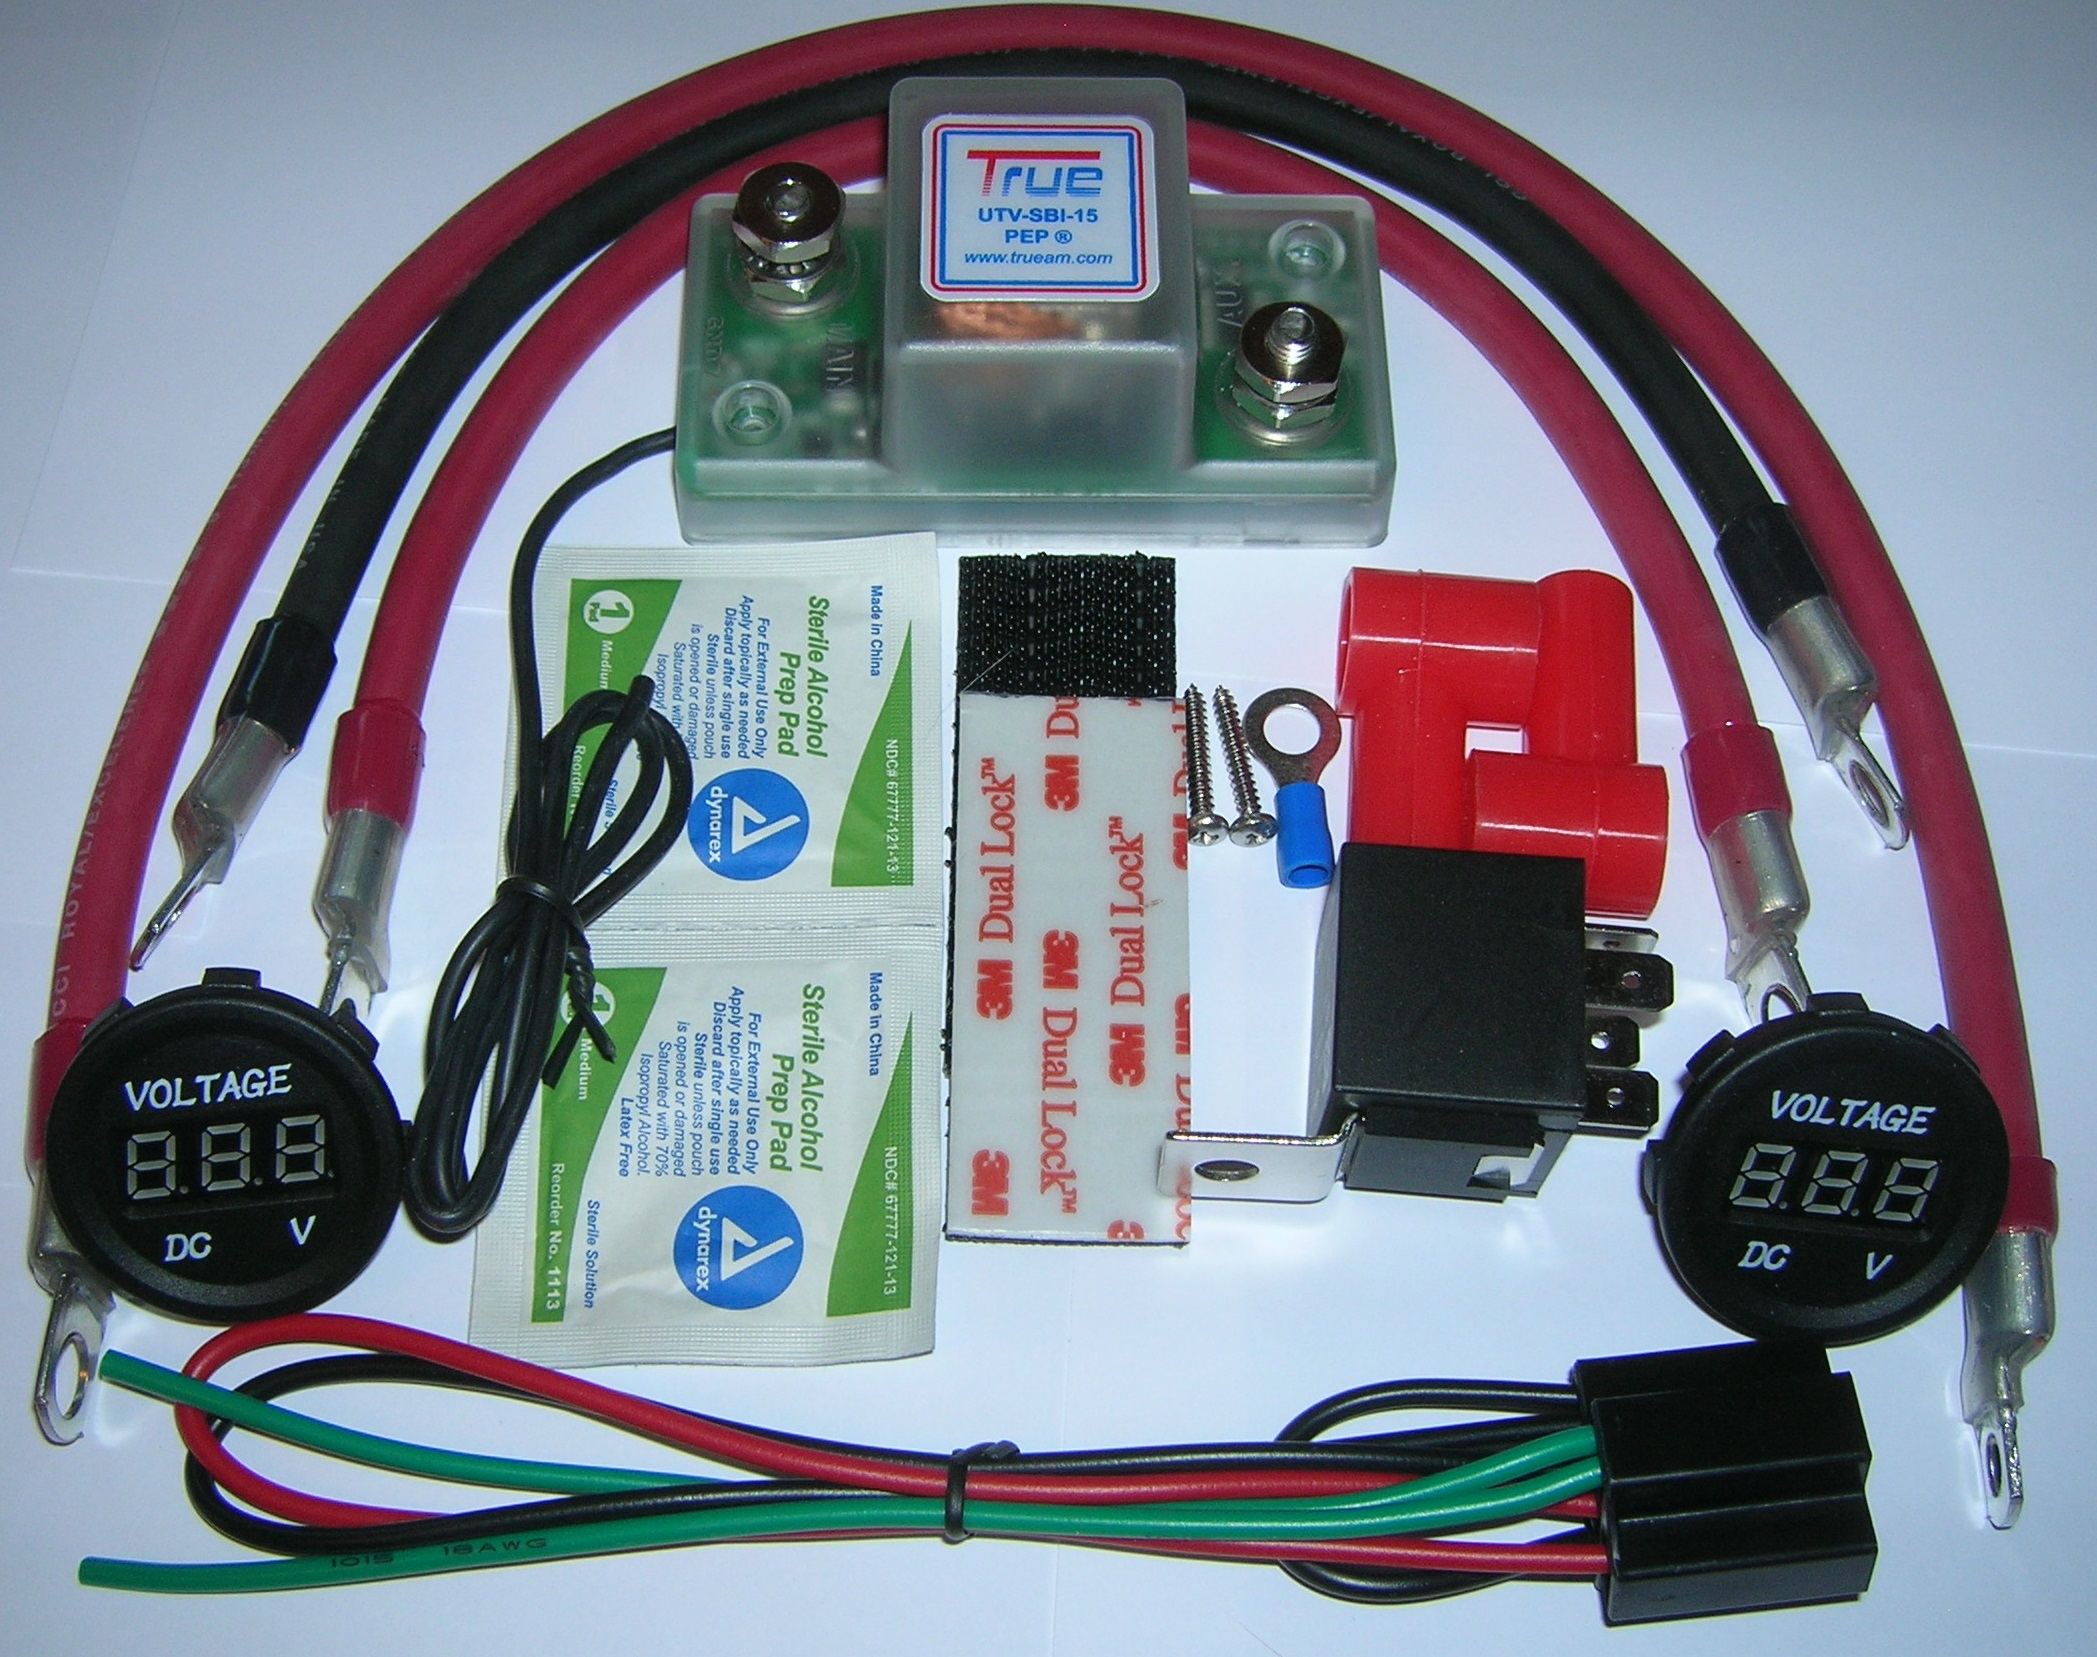 sca dual battery kit wiring diagram 4 to 1 multiplexer logic true utv sbi 15cm connect and monitor